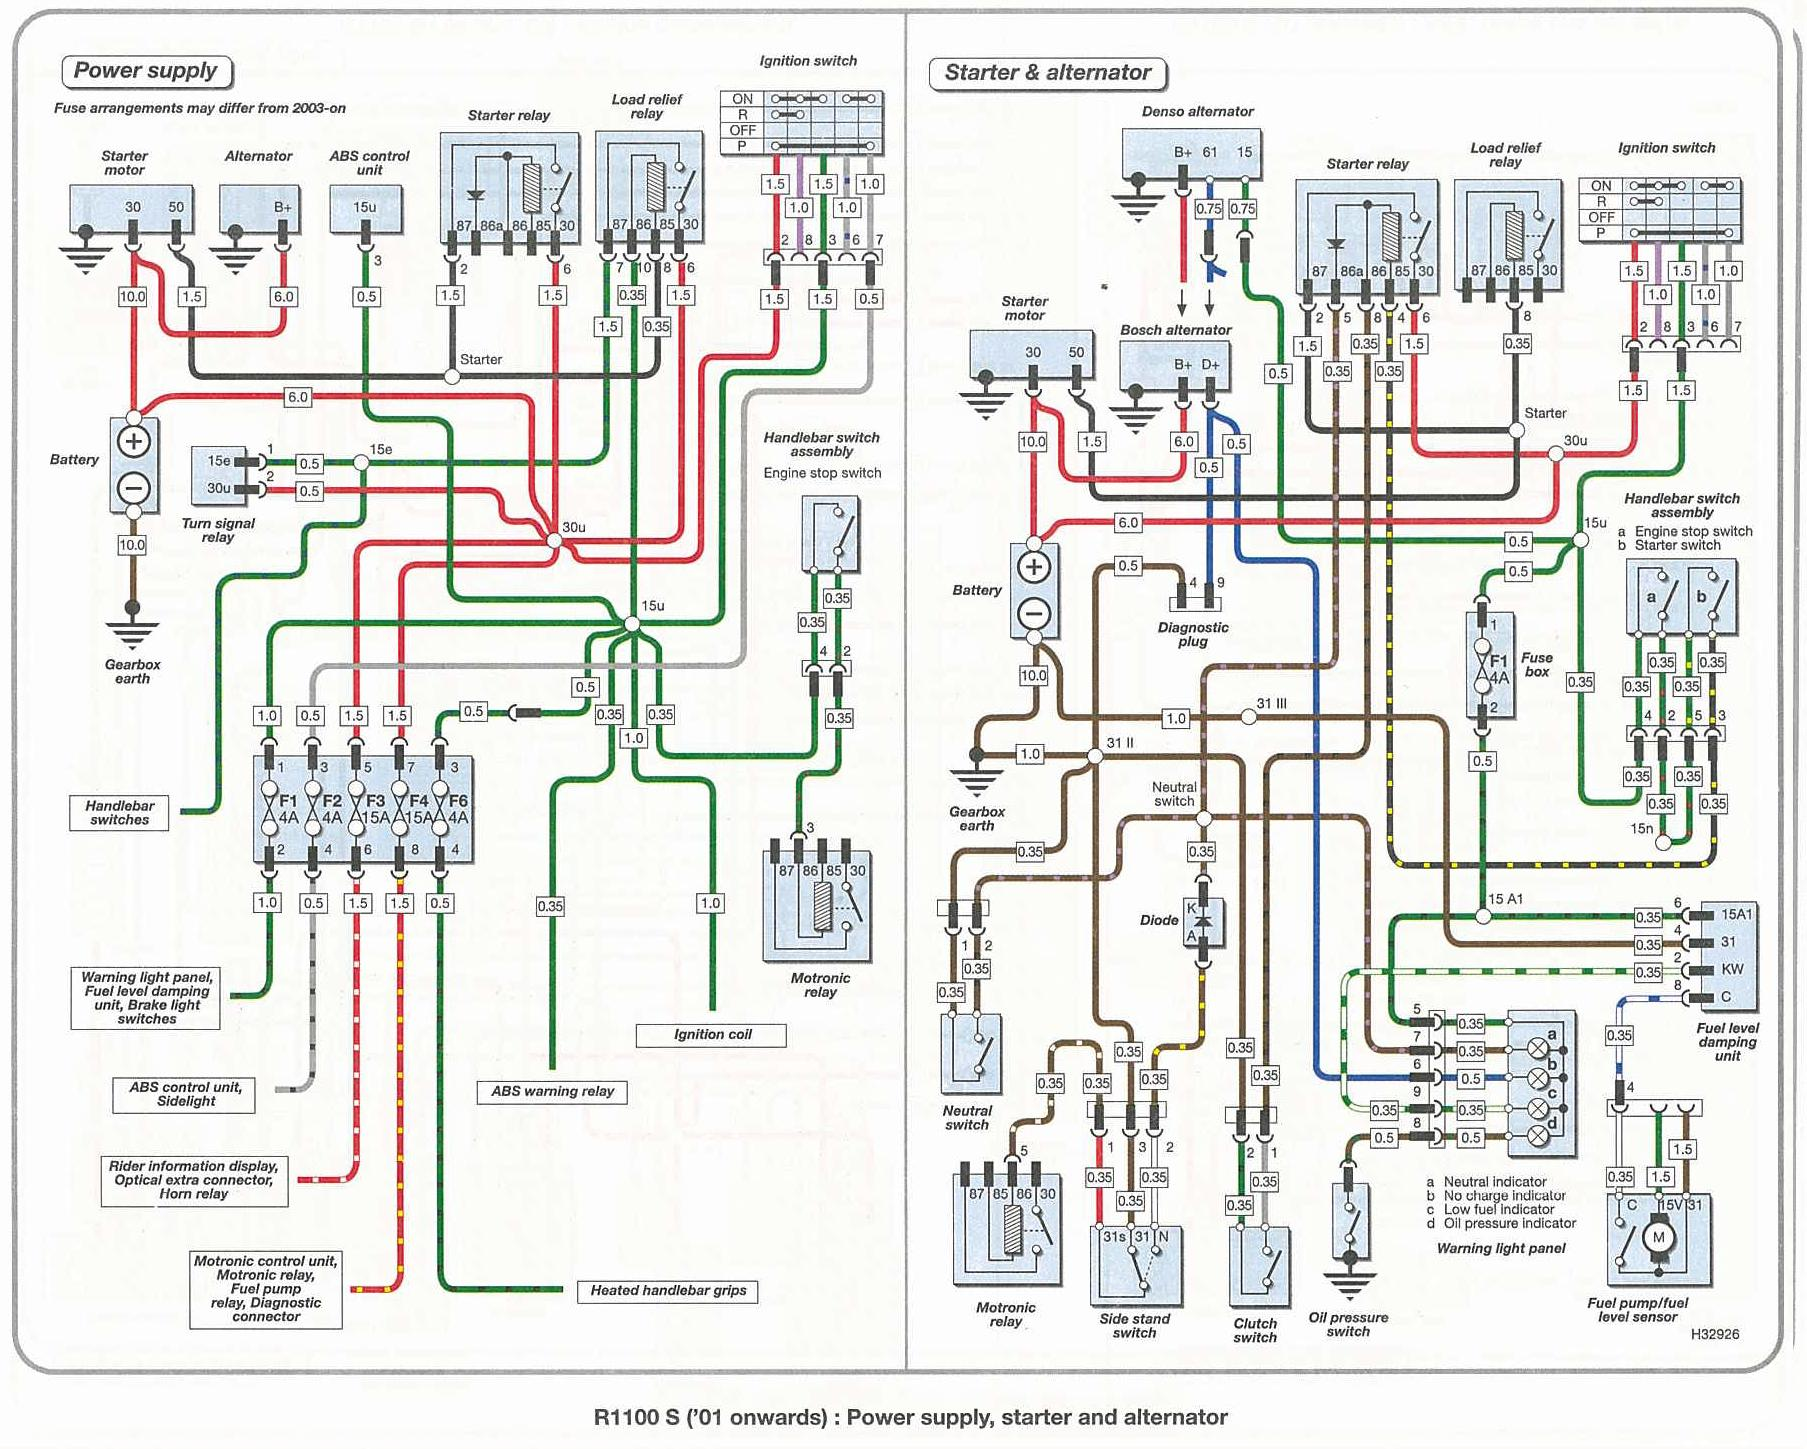 wiring05 bmw wiring diagram bmw wiring diagrams e39 \u2022 wiring diagrams j bmw 2002 wiring diagram at eliteediting.co